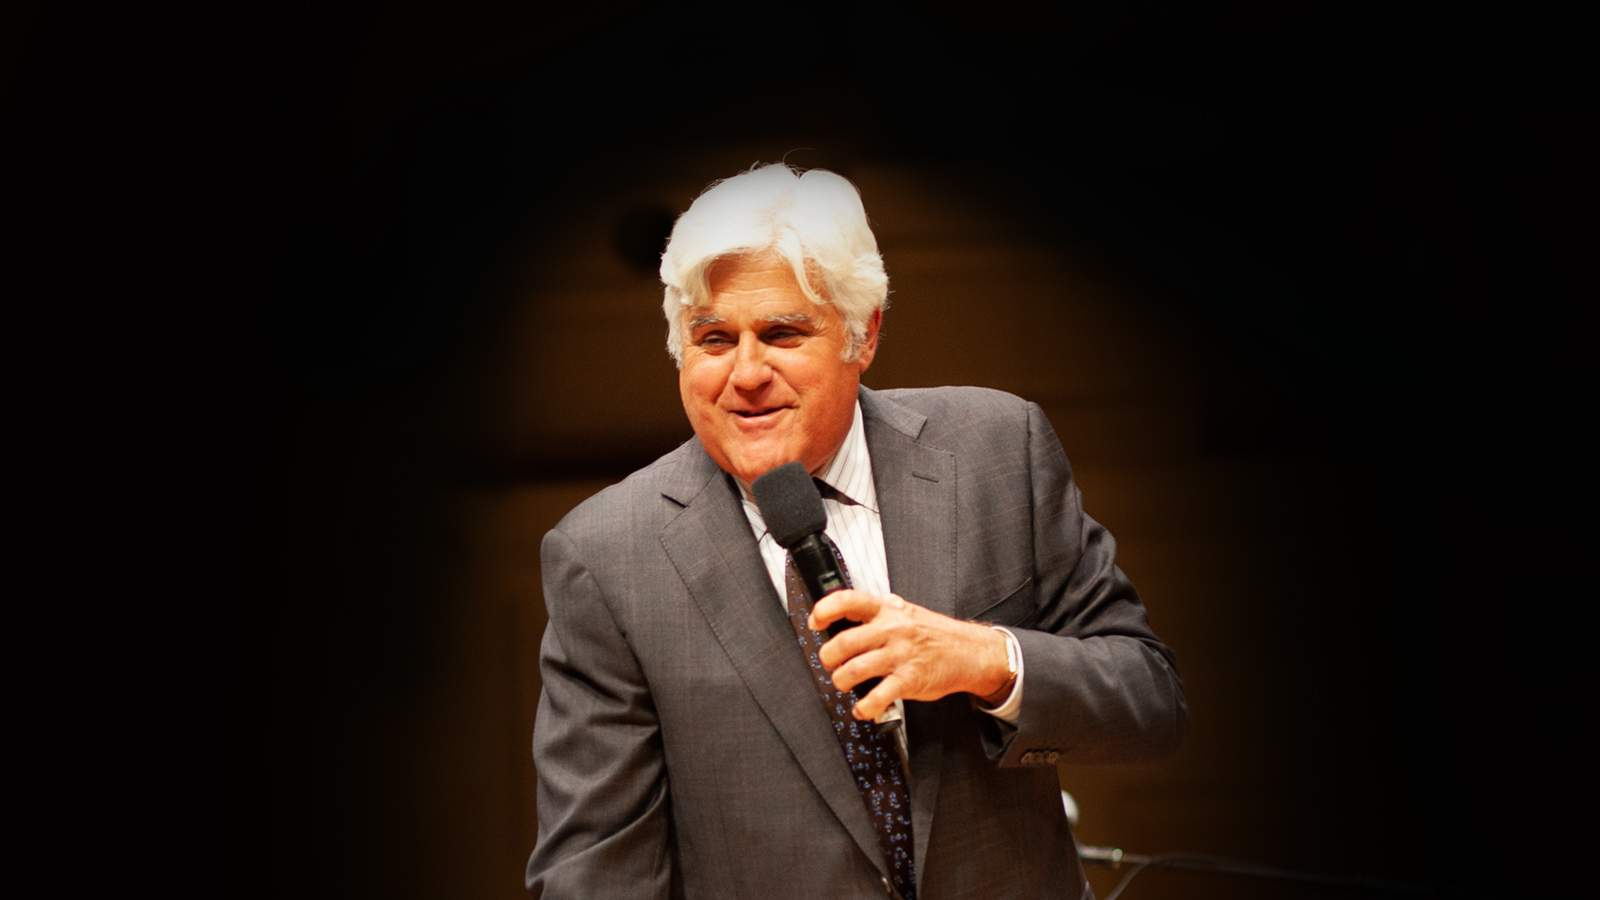 Jay Leno (Rescheduled from 3/21/2020, 8/23/2020)